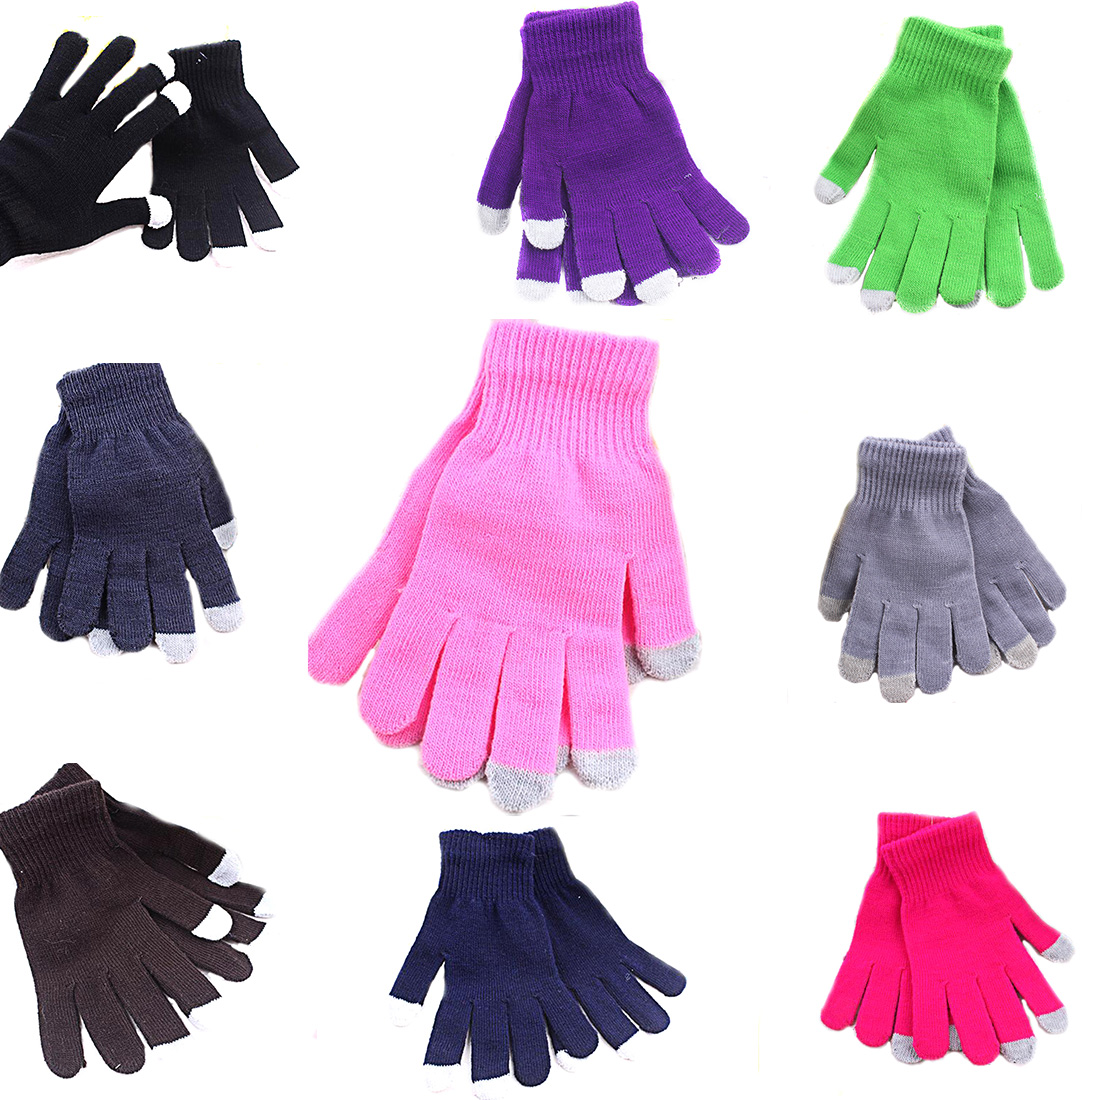 1 Para Frauen/Männer Bequeme Touchscreen Handschuhe Mode Handgelenk Casual Handschuhe Tablet Warm Stricken Winter Handschuh Für Smart telefon image